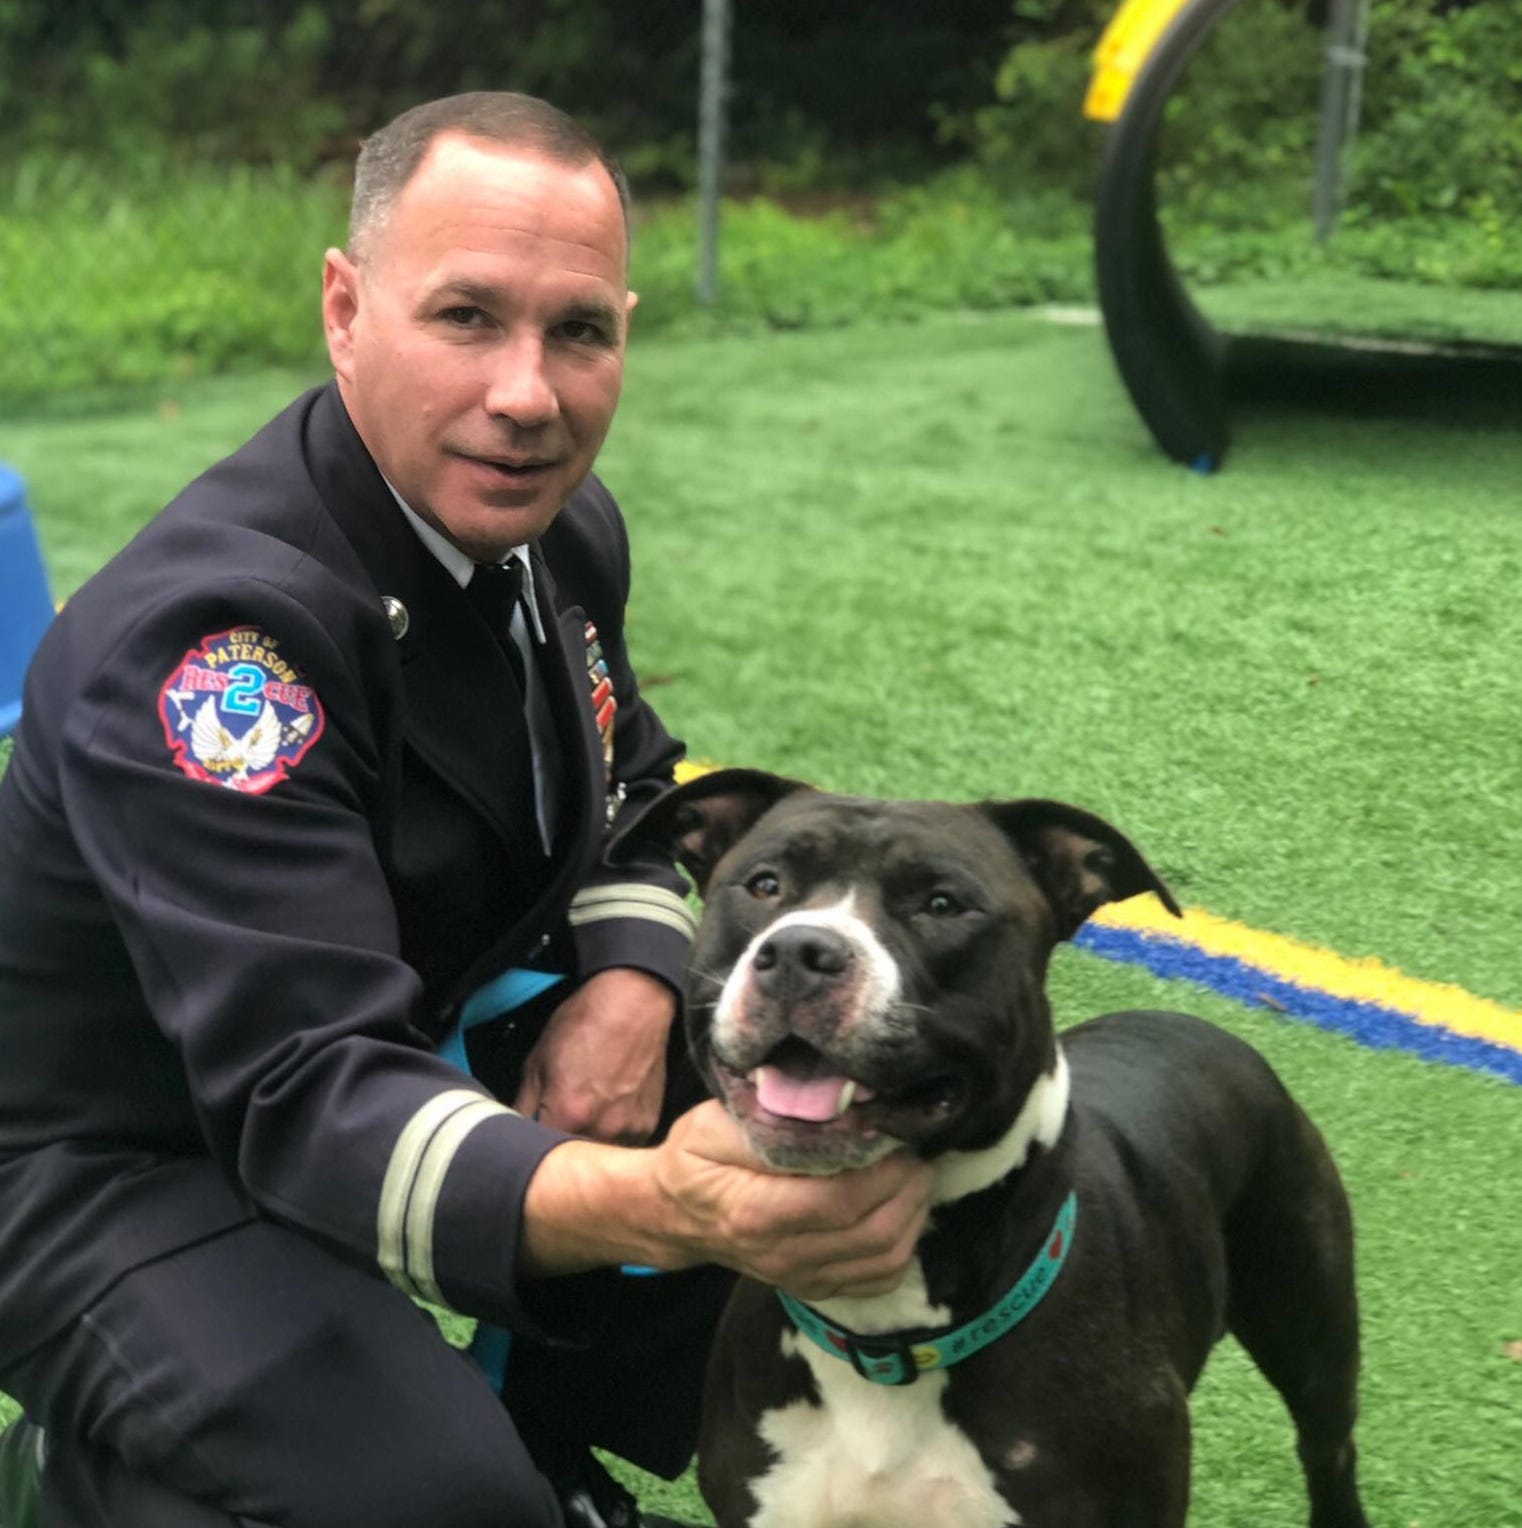 Paterson Fire Department to adopt dog that had been tossed onto Great Falls ledge